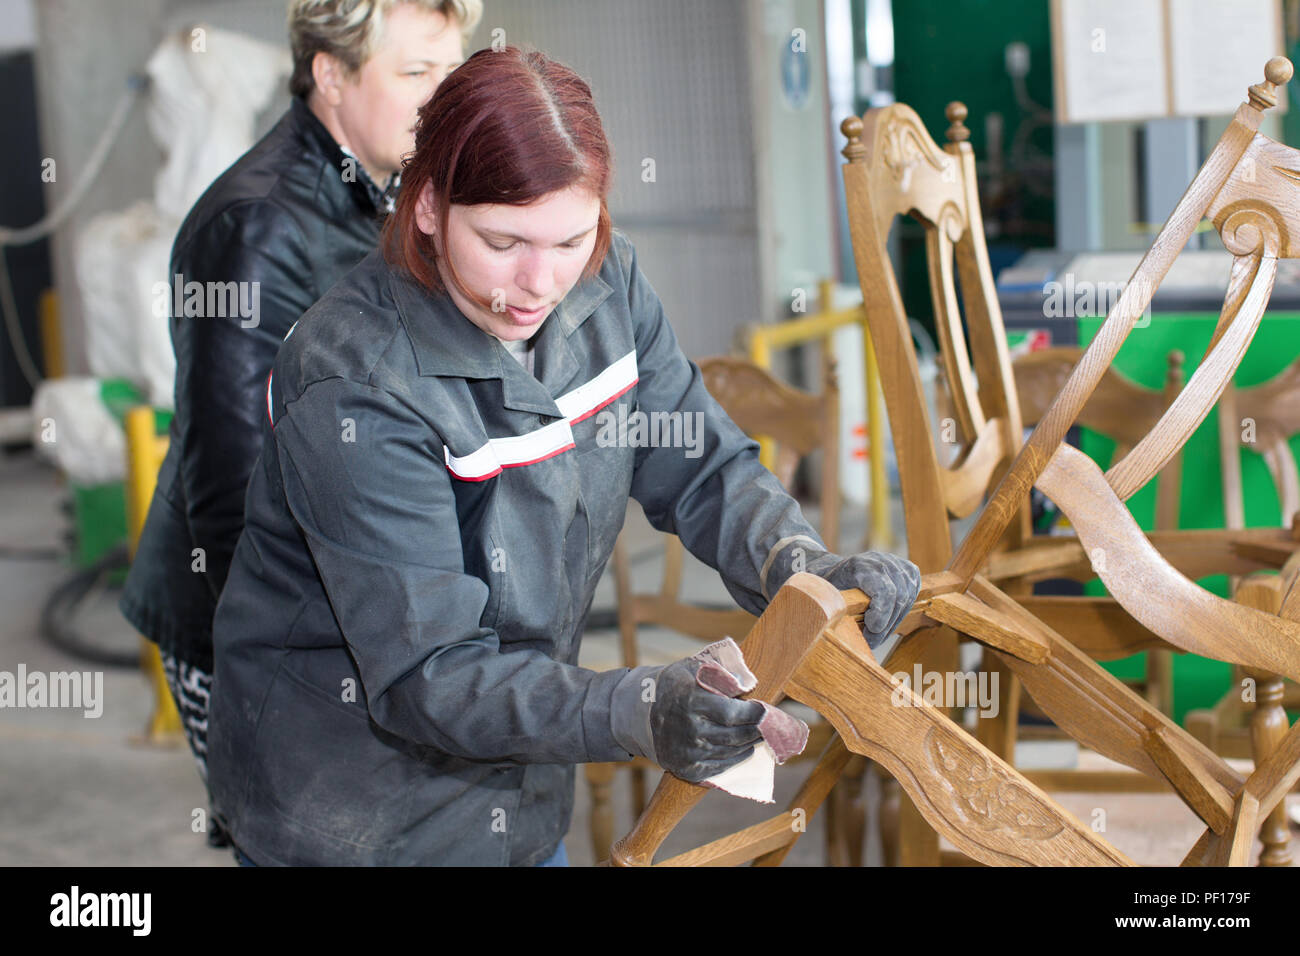 Belarus, the city of Gomel, on April 26, 2018. Furniture factory. The employee of the furniture department polishes the chair with a sandpaper. Furnit Stock Photo